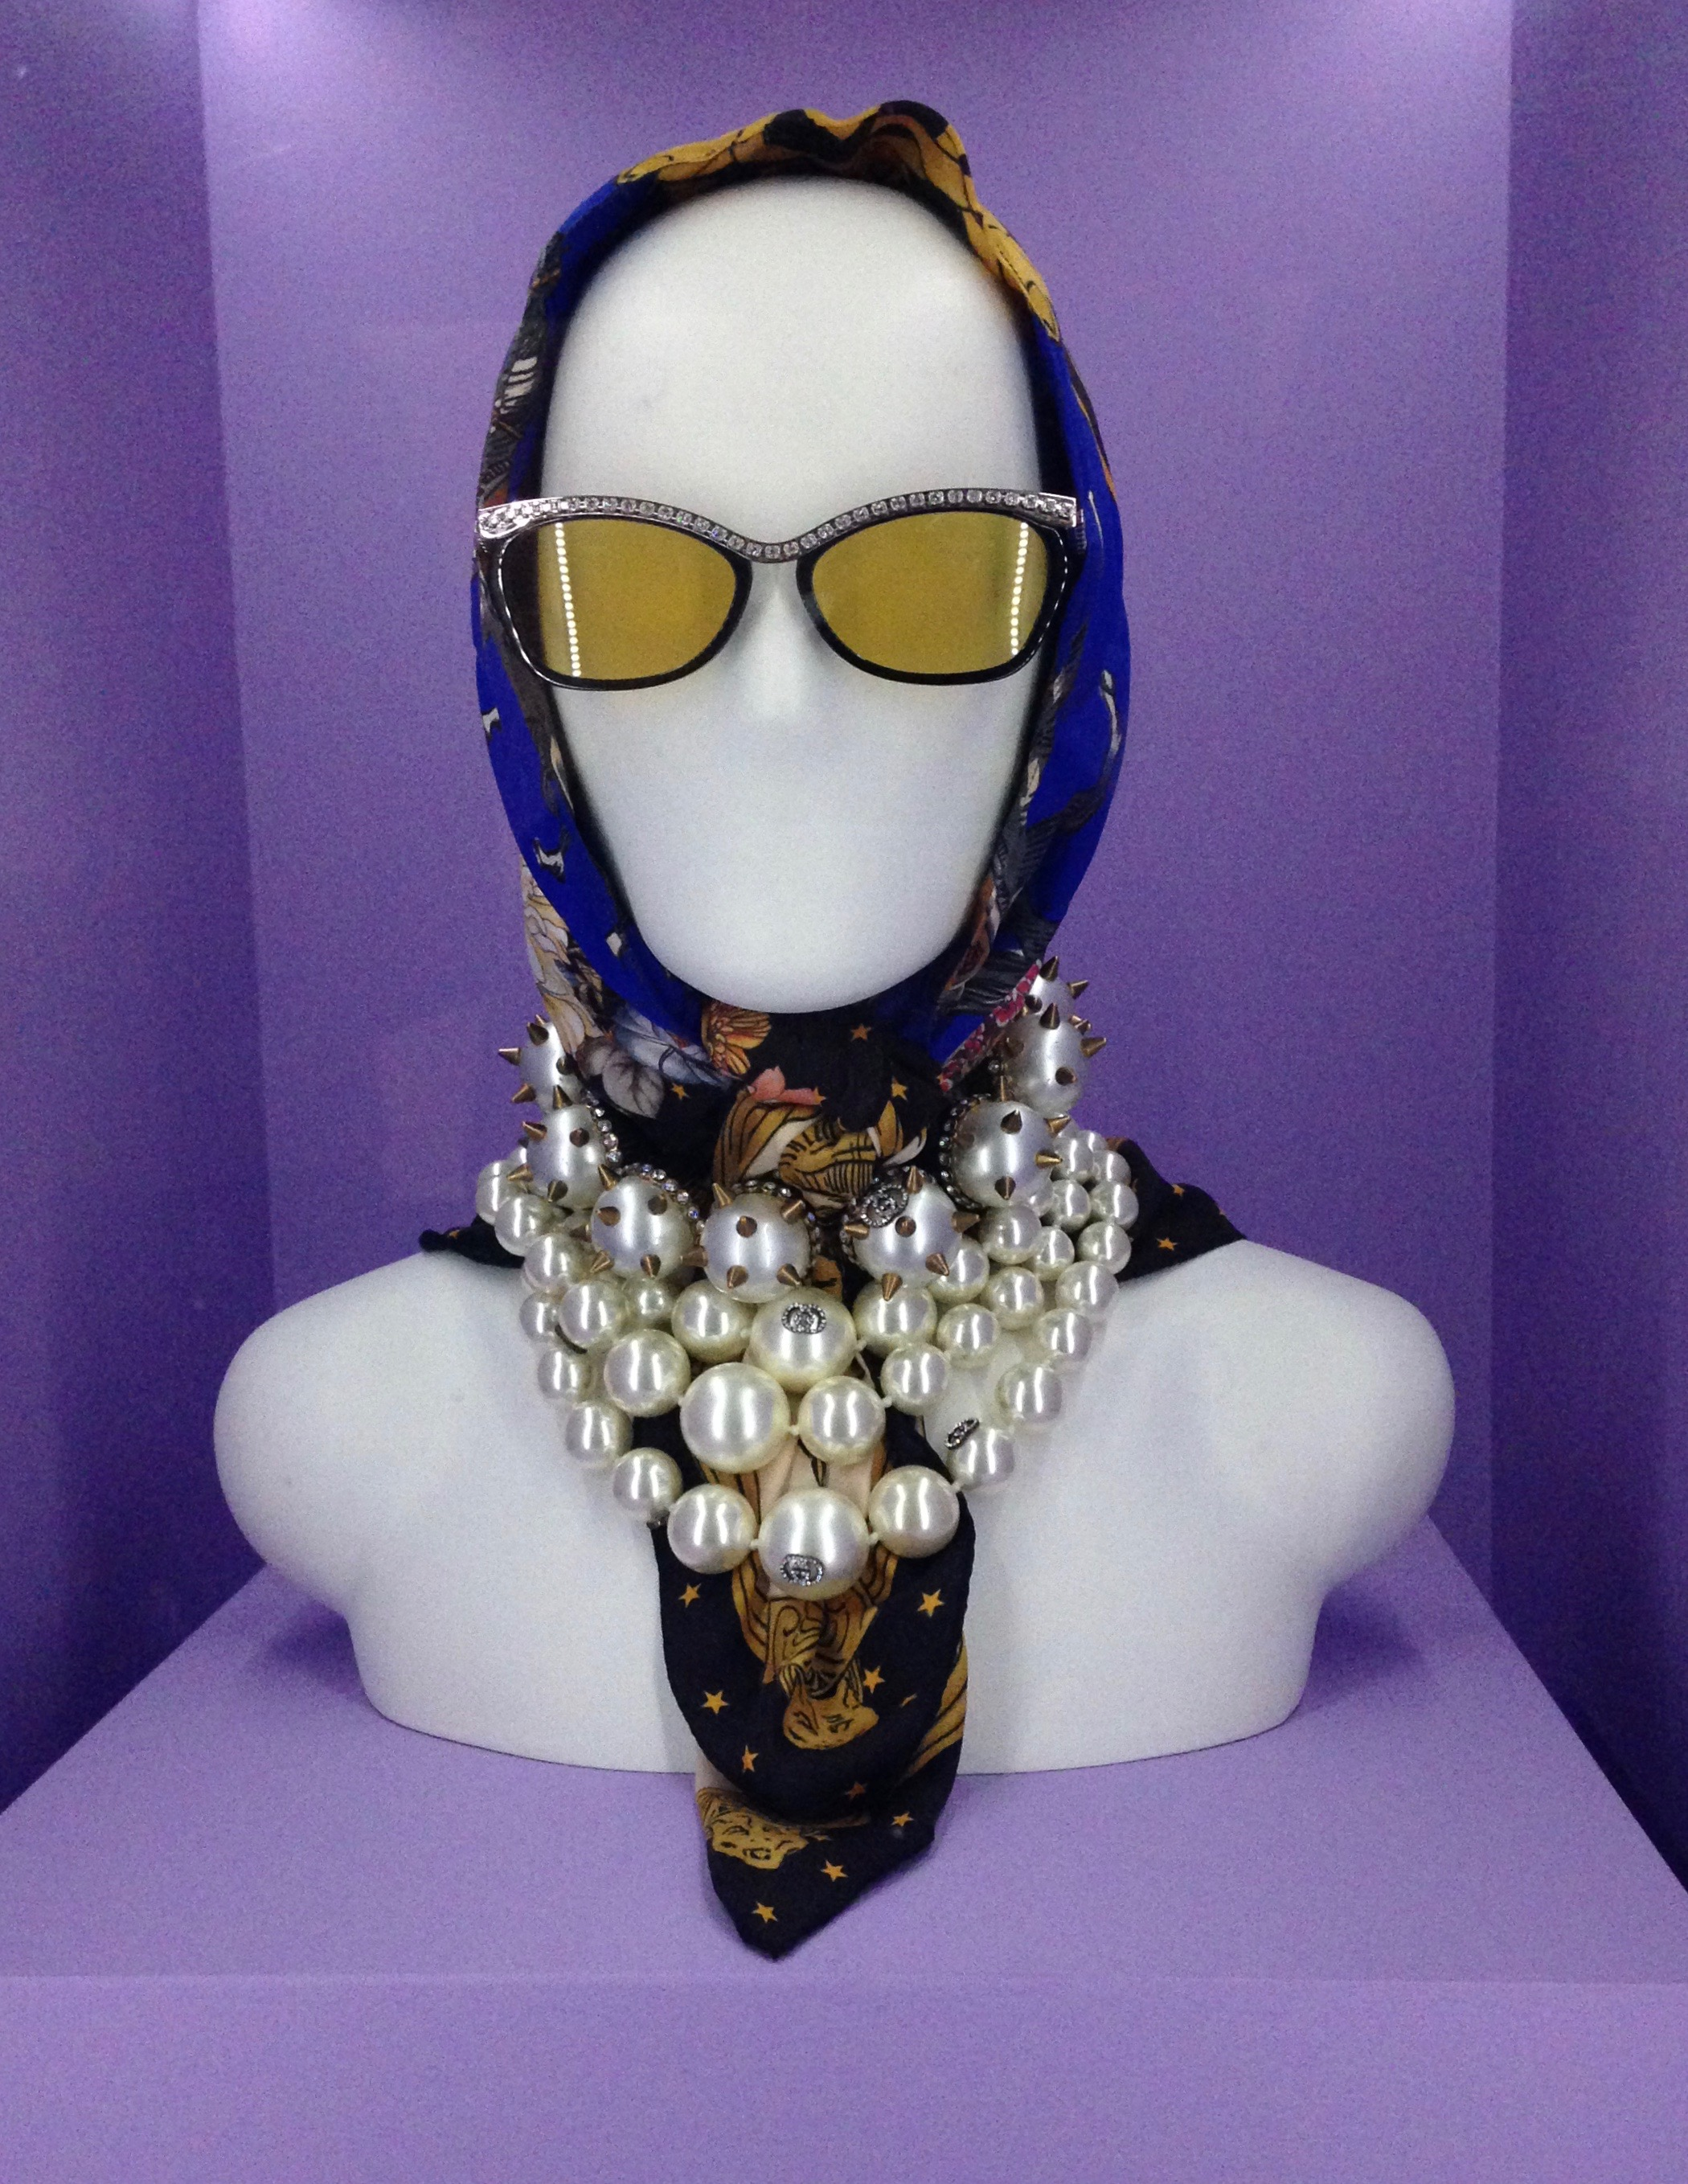 Gucci, Accessory Set, pre-fall 2019, scarf of polychrome printed silk twill; glasses of black and yellow synthetic, clear crystals, and metal; necklace of pearl beads, clear crystals, and metal